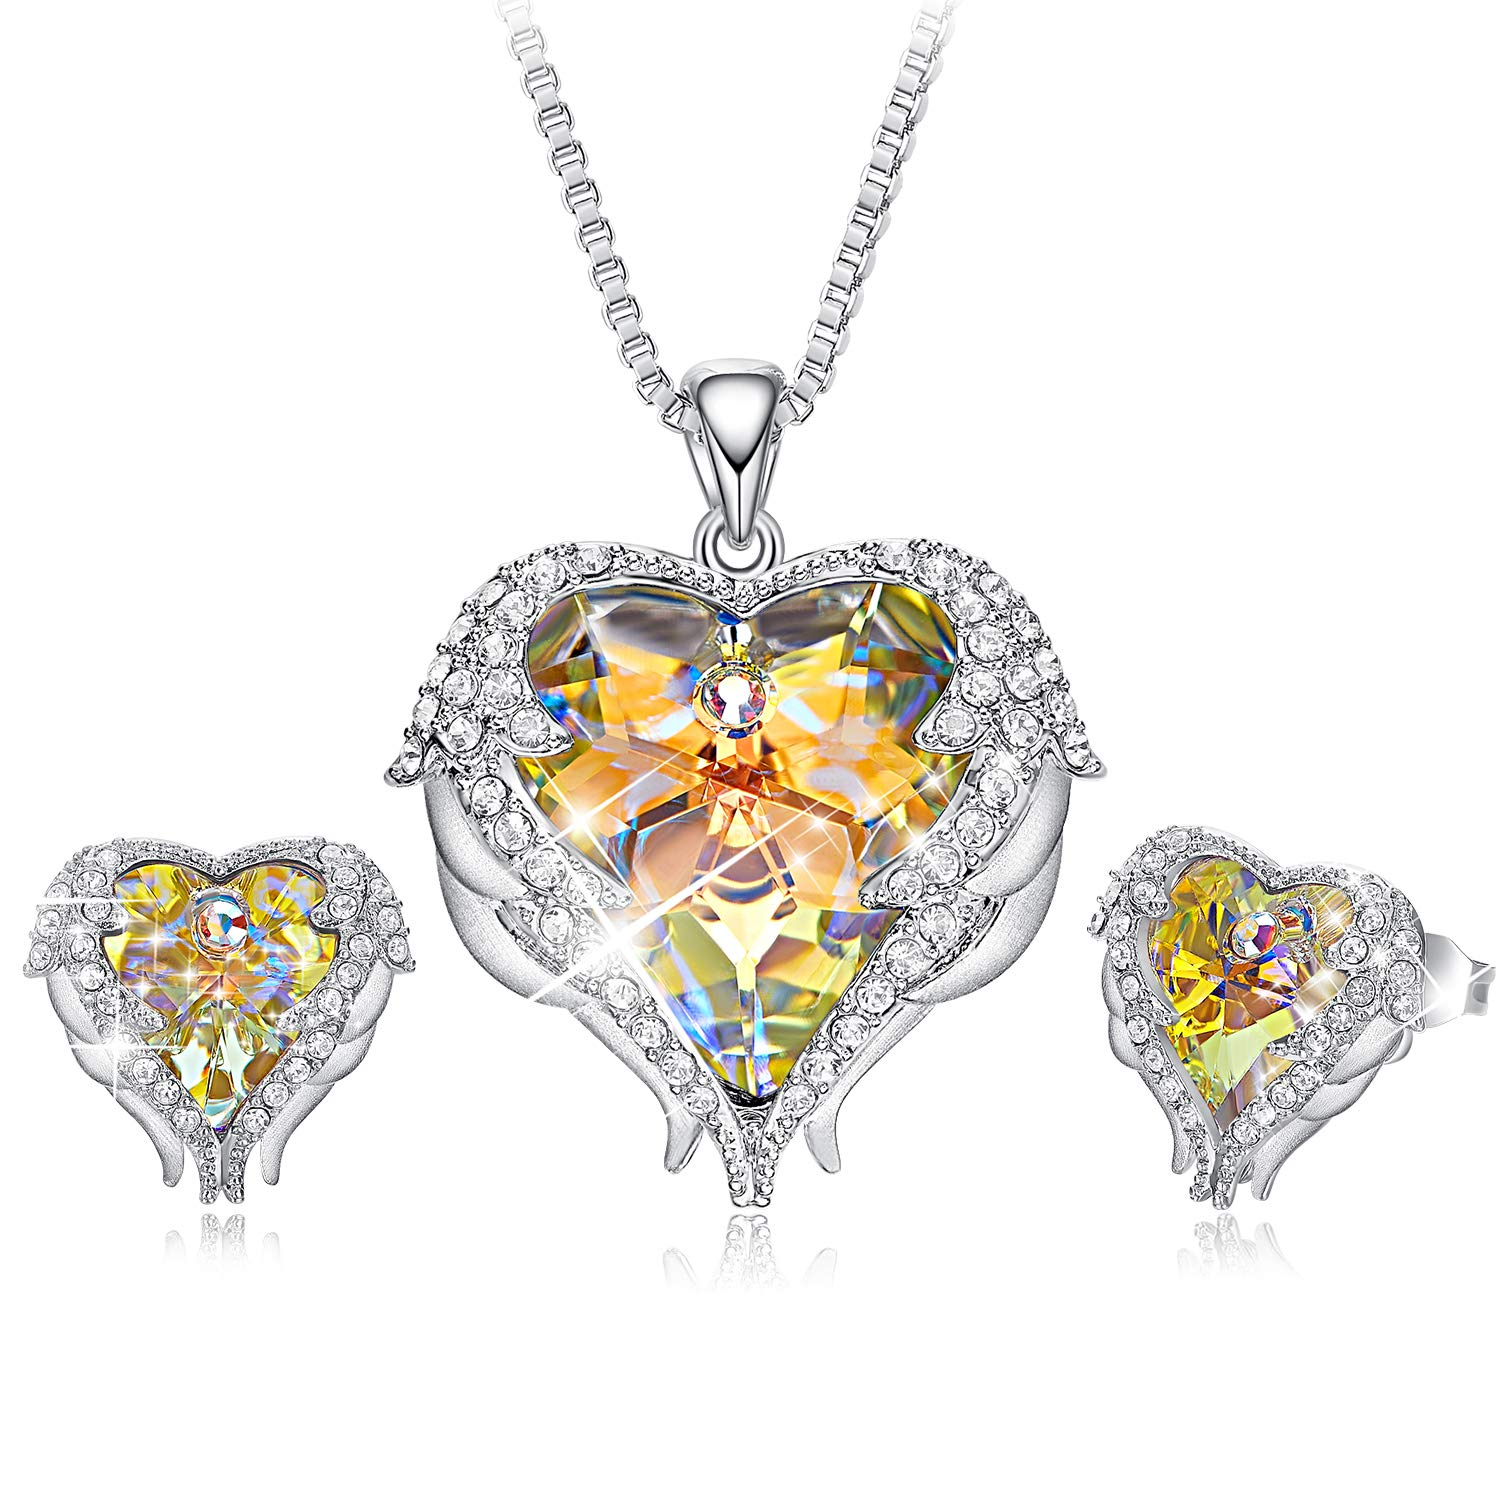 CDE Jewelry Set for Women 18K White Gold Plated Angel Wing Swarovski Crystal Pendant Necklace Heart of Ocean Stud Earrings for Girls Mom Crystals from Swarovski CDEP0902SET